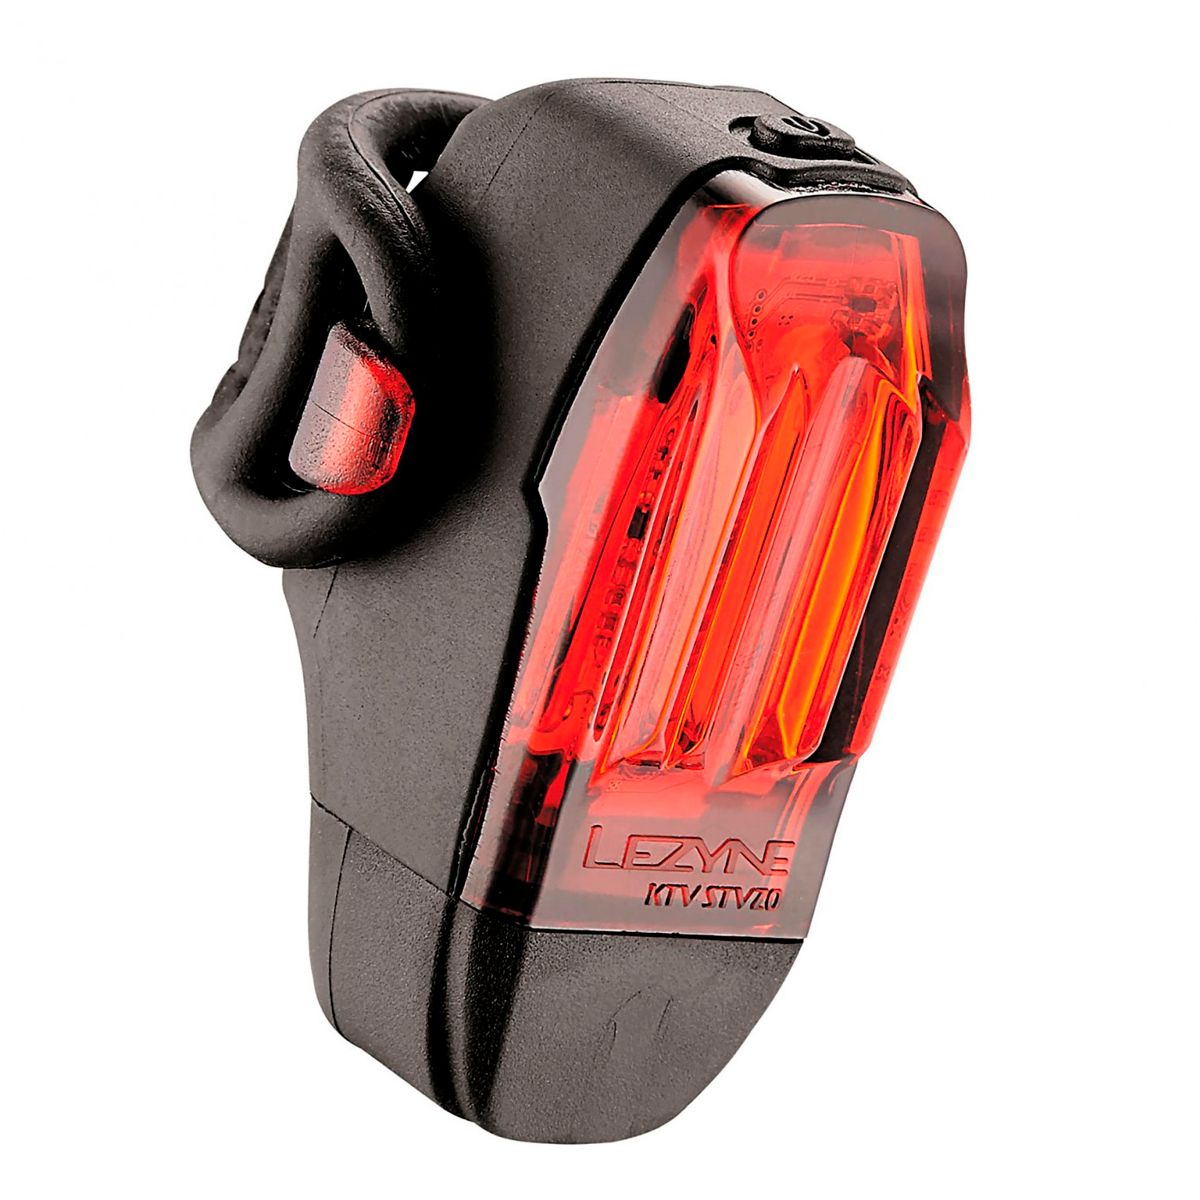 KTV rear light